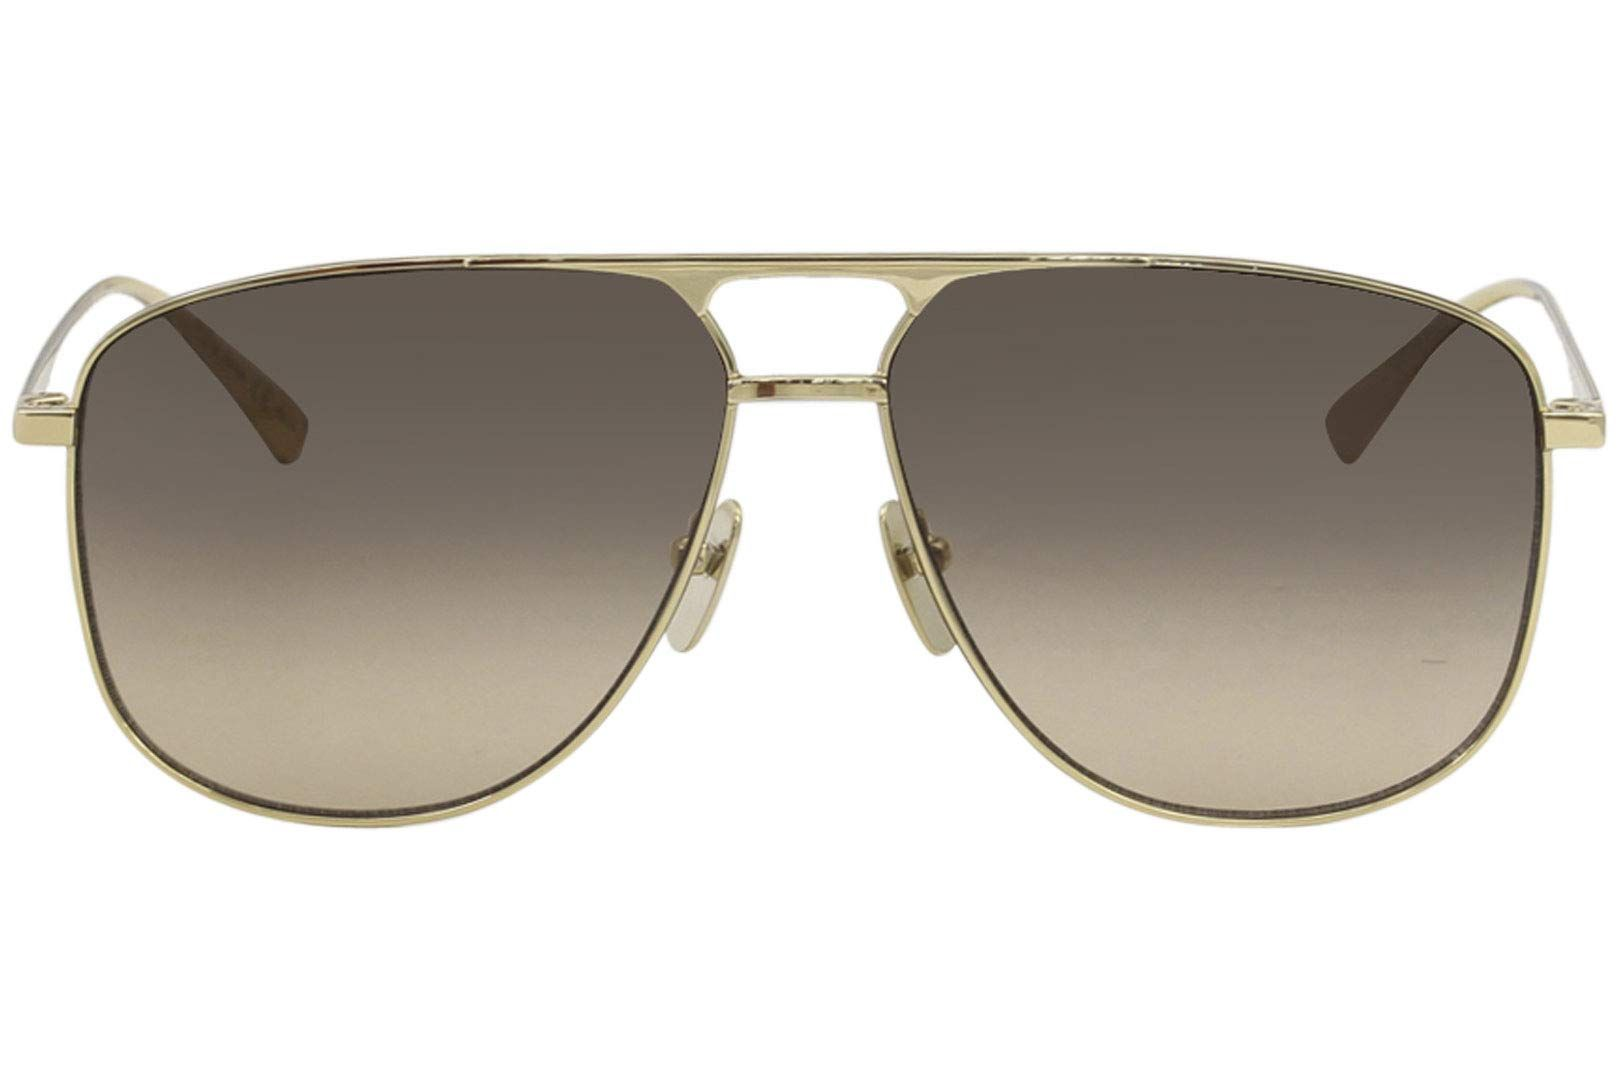 5b198b9934a Sunglasses Gucci GG 0336 S 001 GOLD BROWN    Learn more at the photo web  link. (This is an affiliate link).